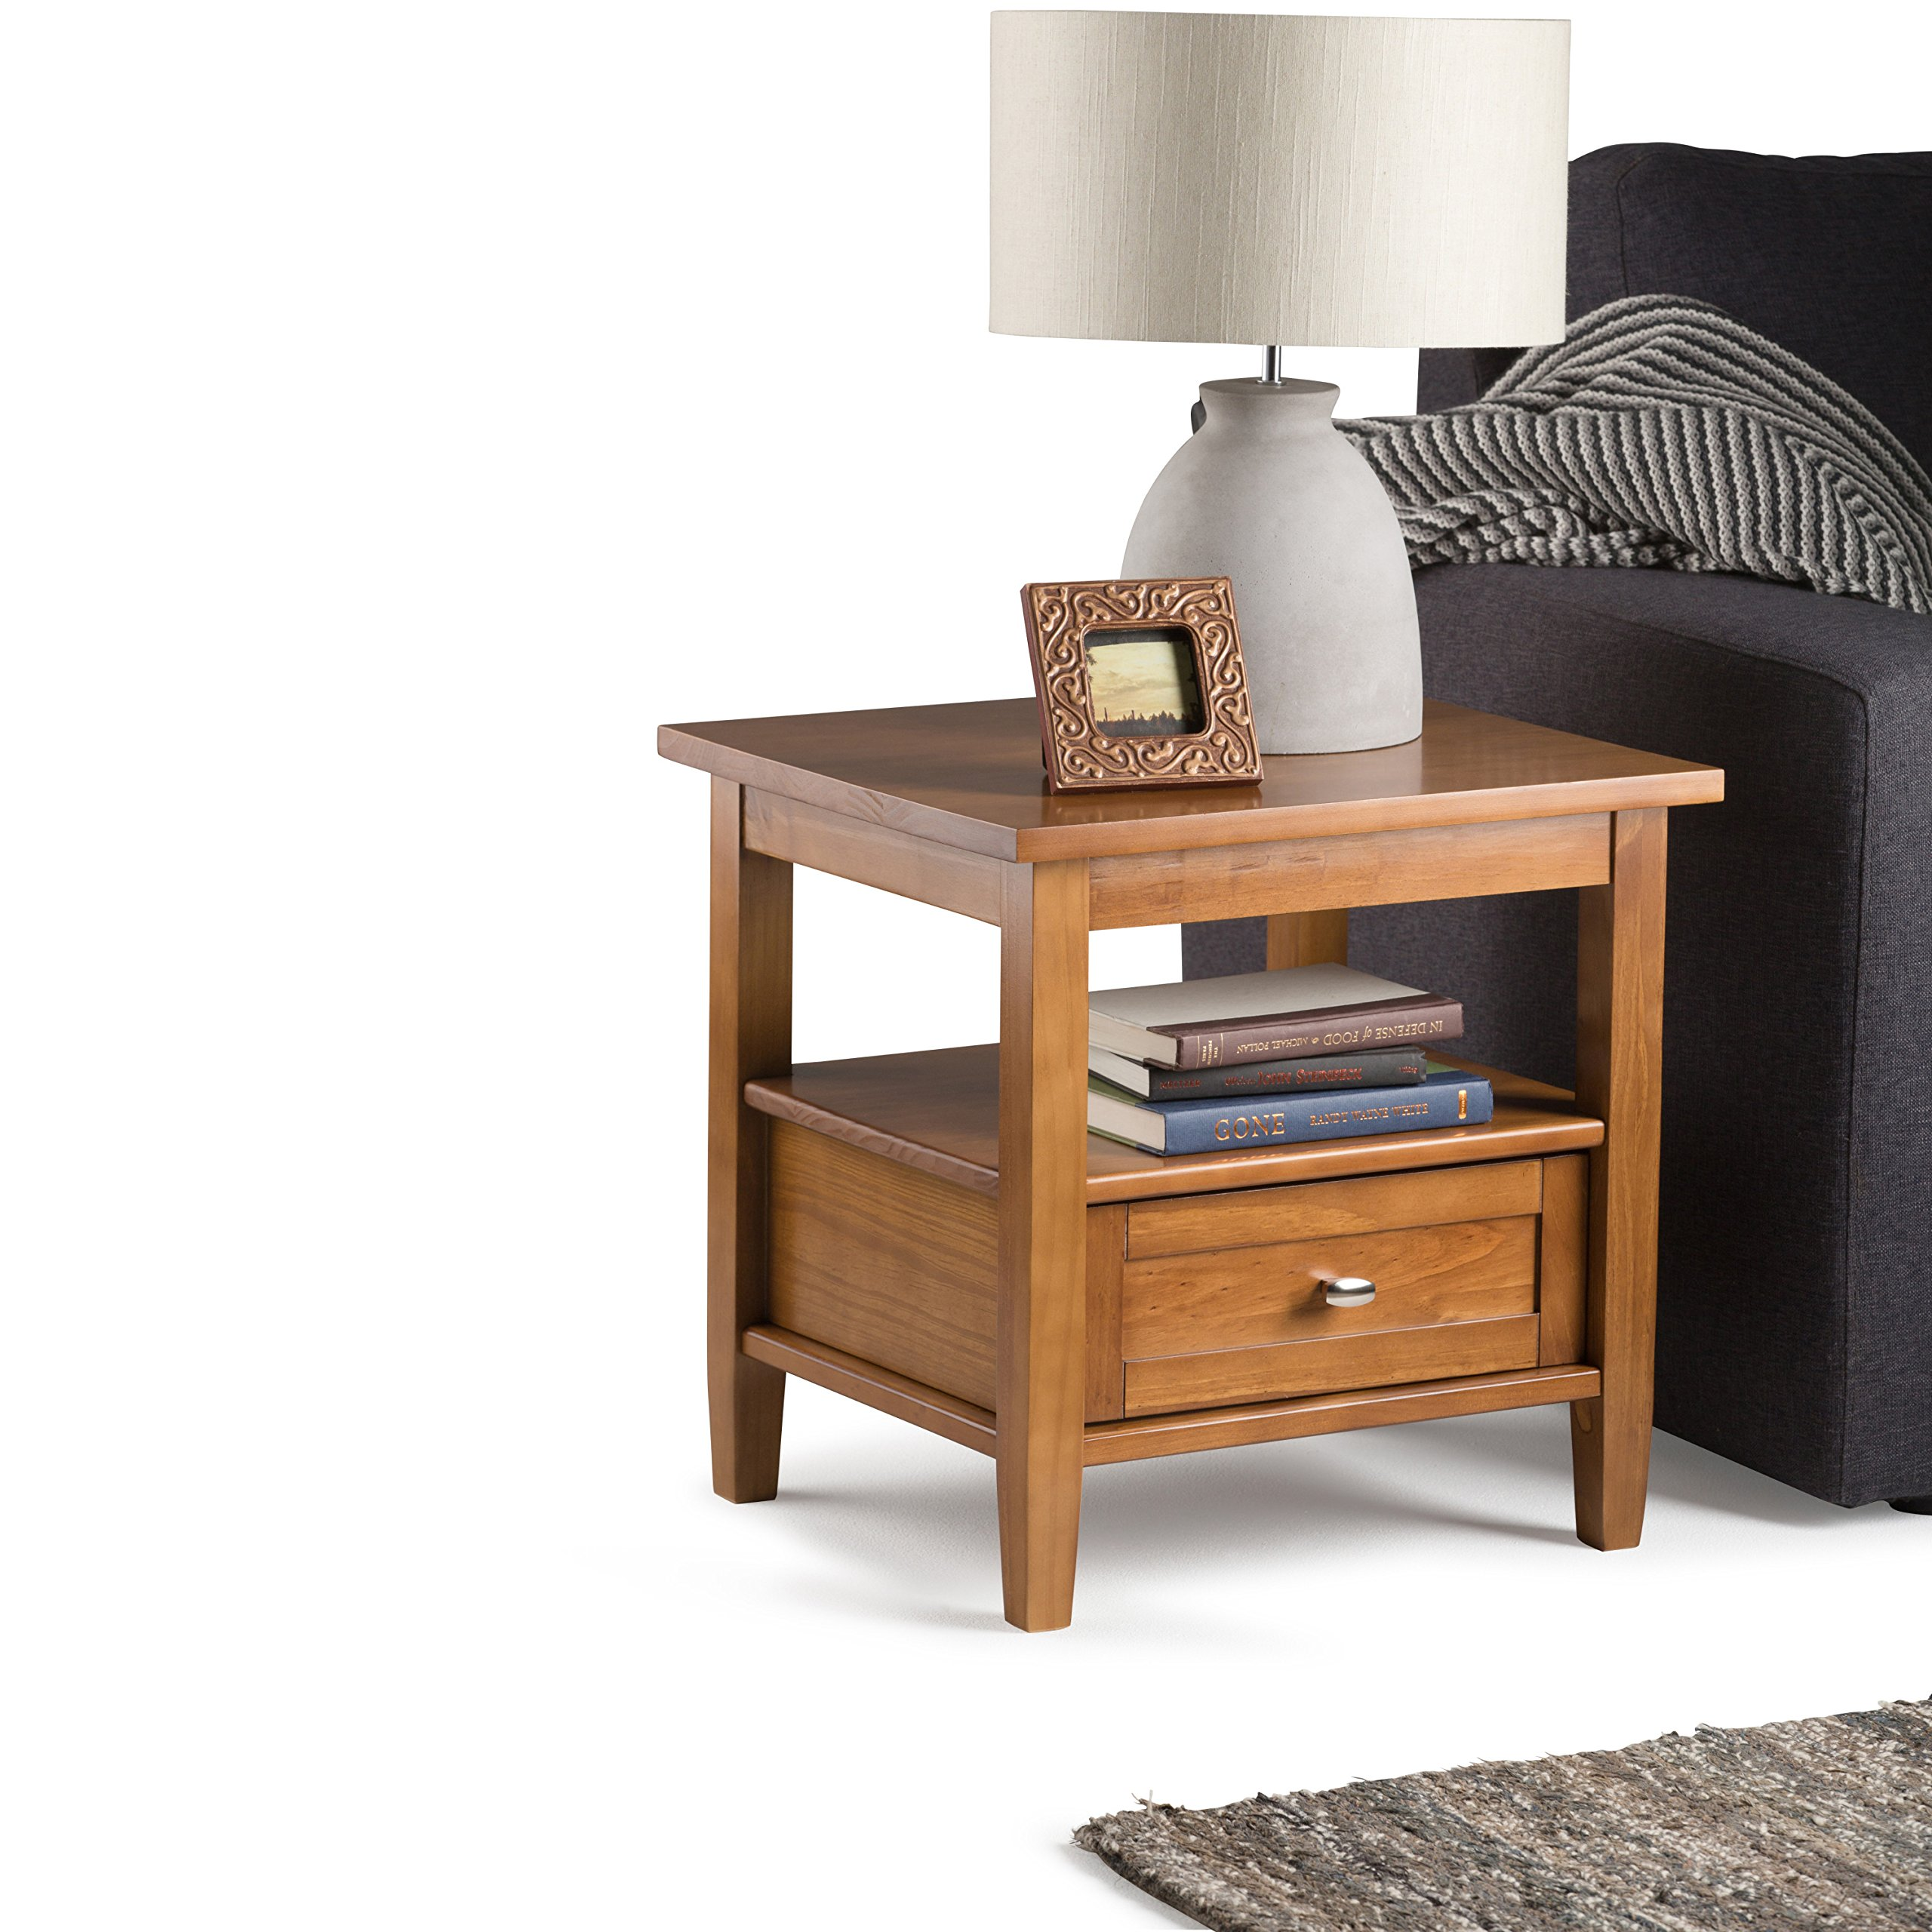 Simpli Home Warm Shaker Solid Wood End Table, Honey Brown by Simpli Home (Image #2)